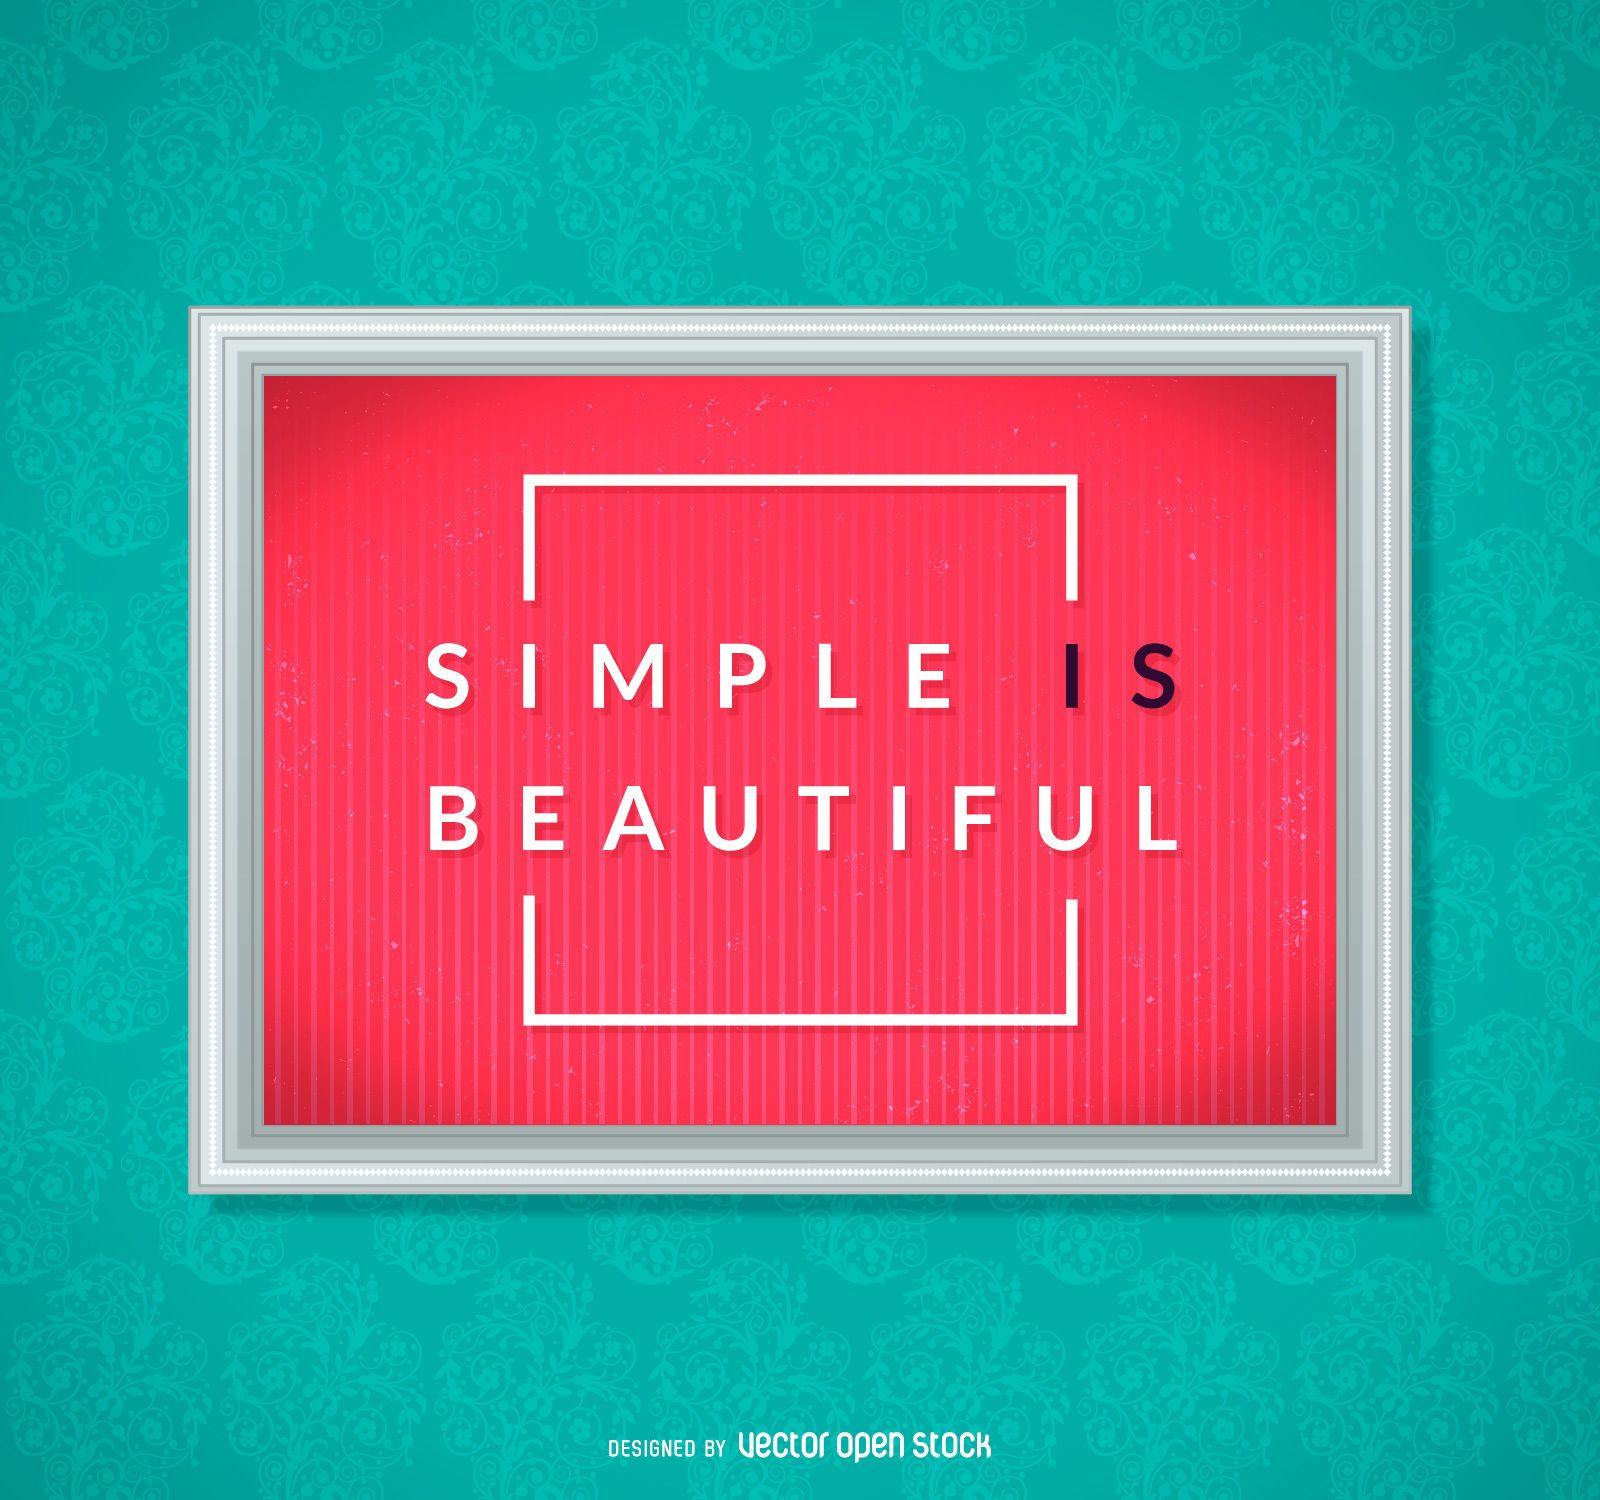 Simple is beautiful poster